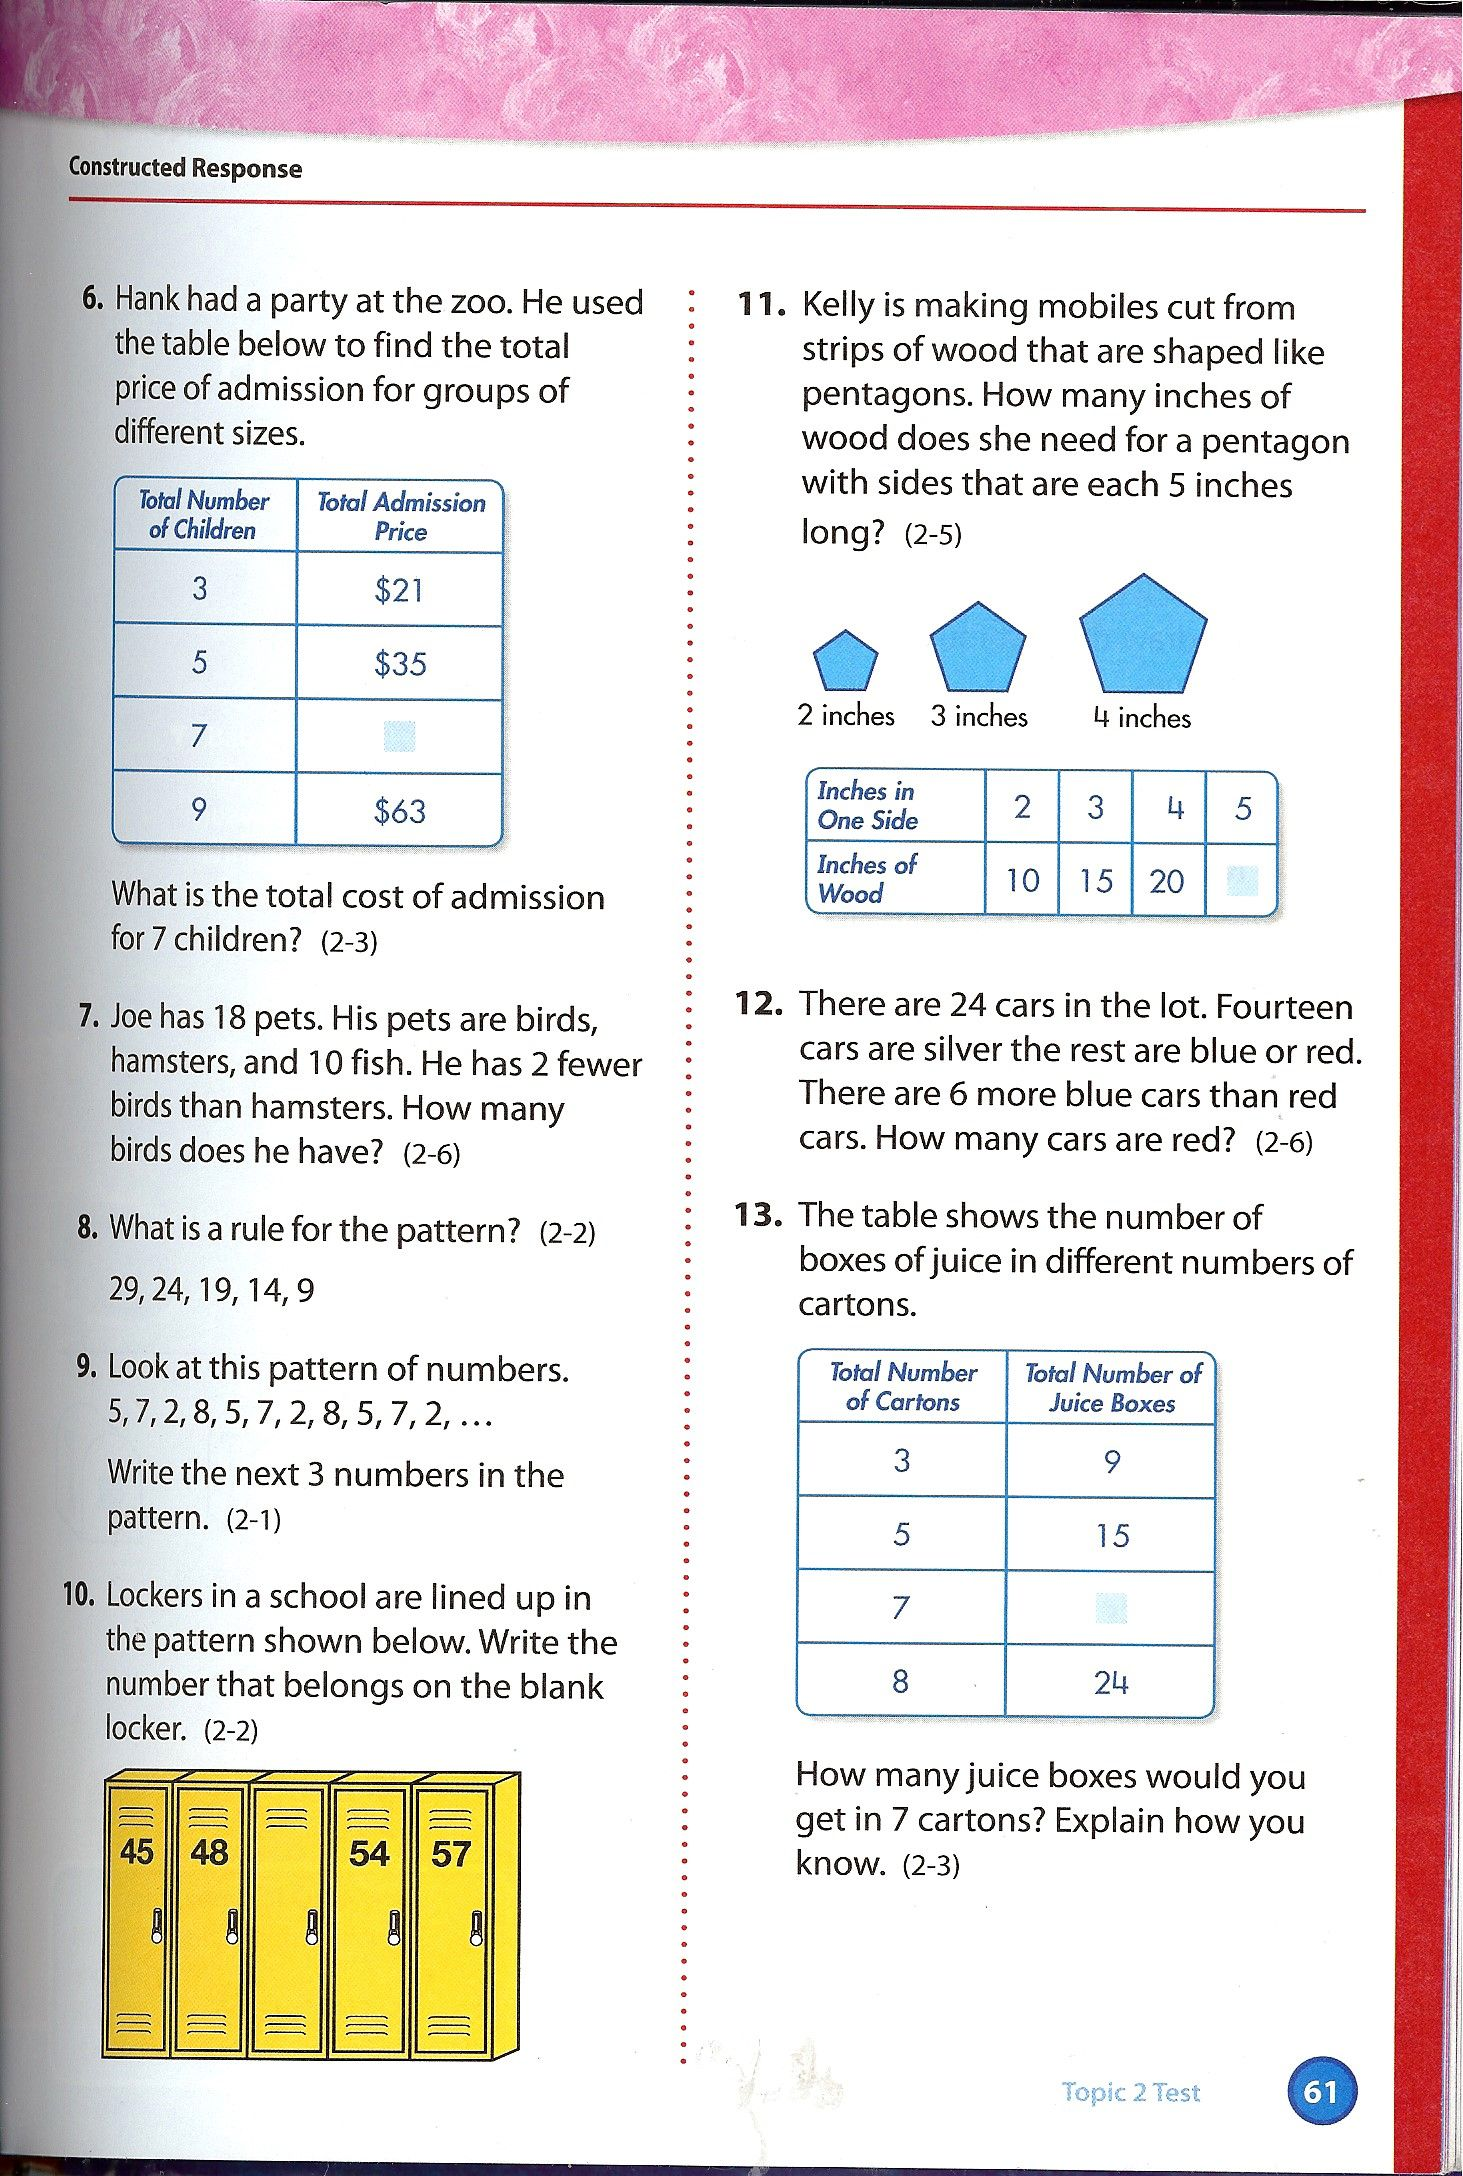 Uncategorized Envision Math 4th Grade Worksheets 4th grade envision math topics 1 10 vocabulary foldable 4 topic 2 test page 2